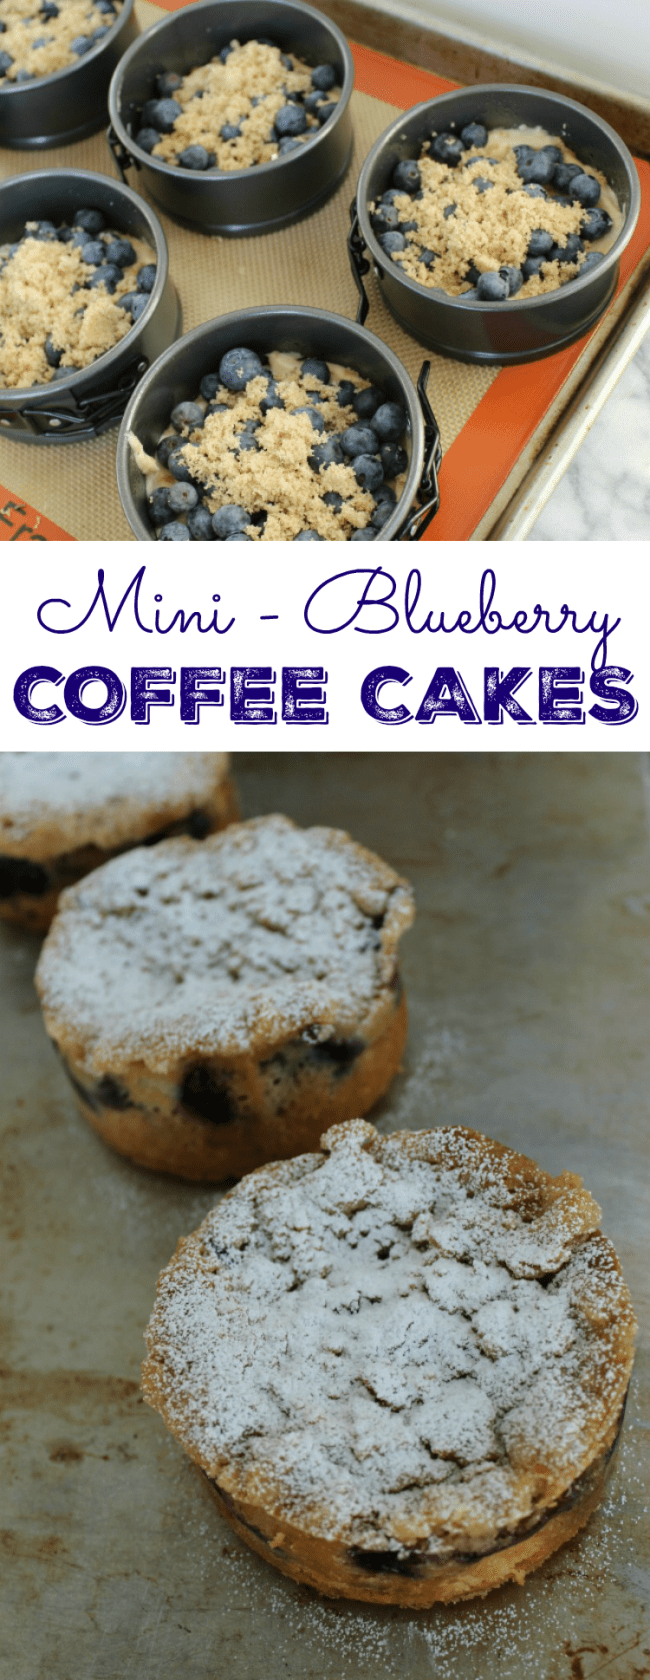 Streusel topping gives these Mini-Blueberry Breakfast Cakes a warm, cinnamon flavor and a bit of crunch. These coffee cakes are so moist and easy to make! |  OHMY-CREATIVE.COM | #blueberrycoffeecake #blueberrybreakfastcake #brunchrecipe #breakfastrecipe